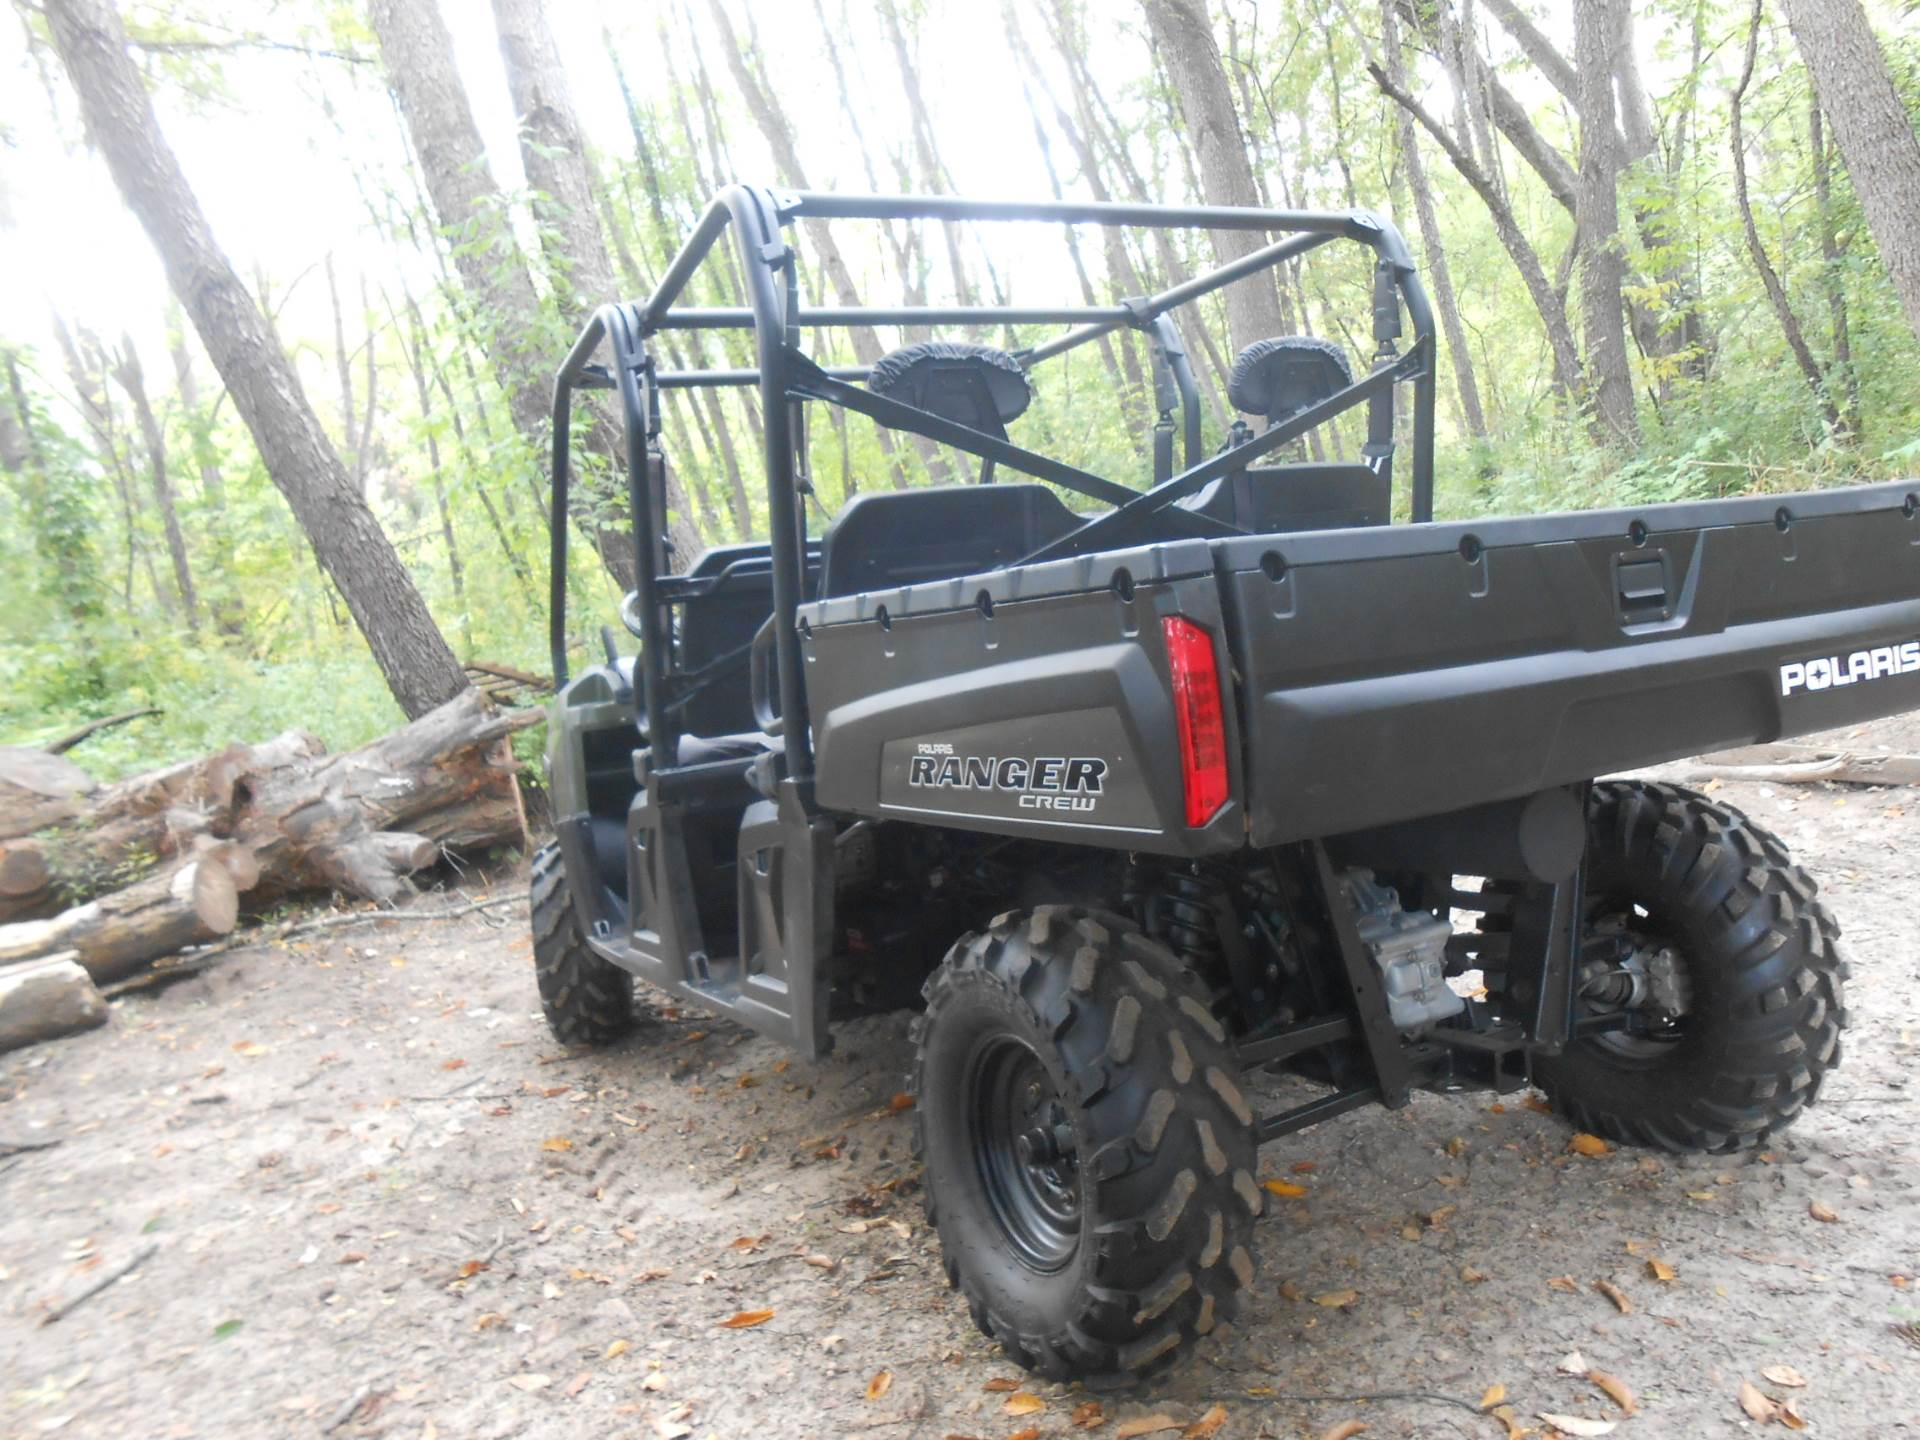 2014 Polaris Ranger Crew® 800 EFI in Howell, Michigan - Photo 16